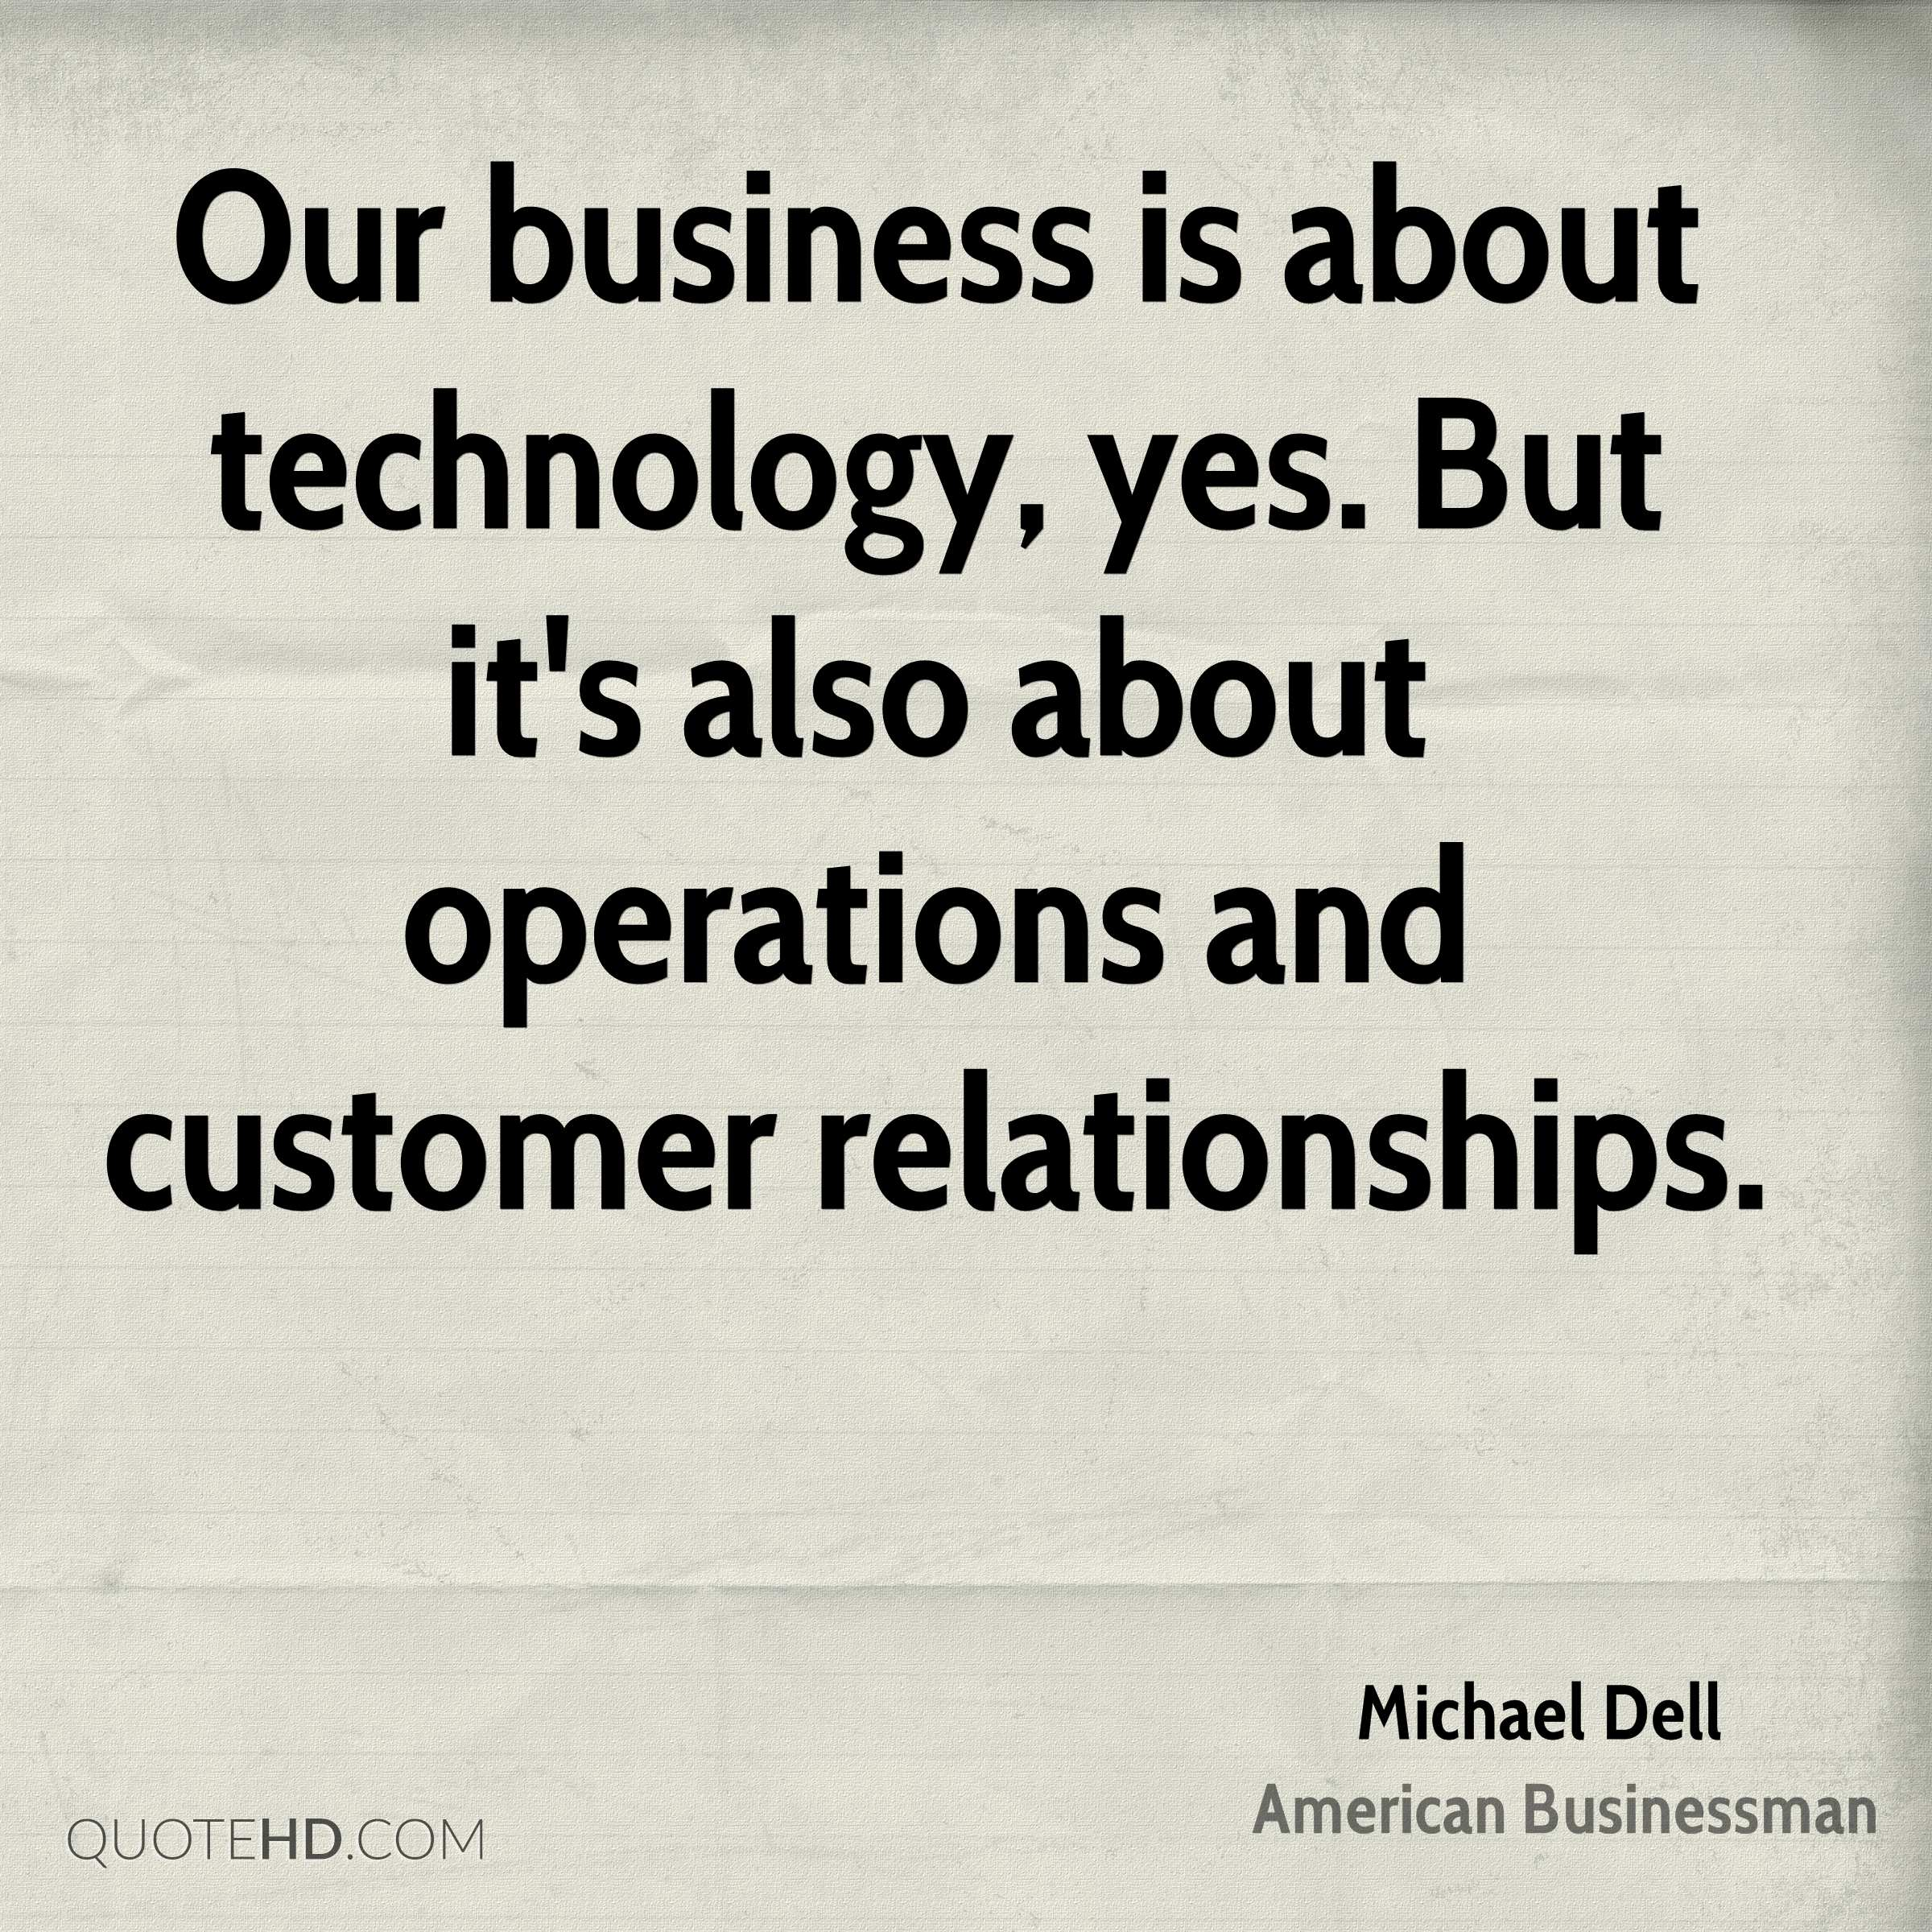 Quotes On Technology Cool Michael Dell Technology Quotes  Quotehd